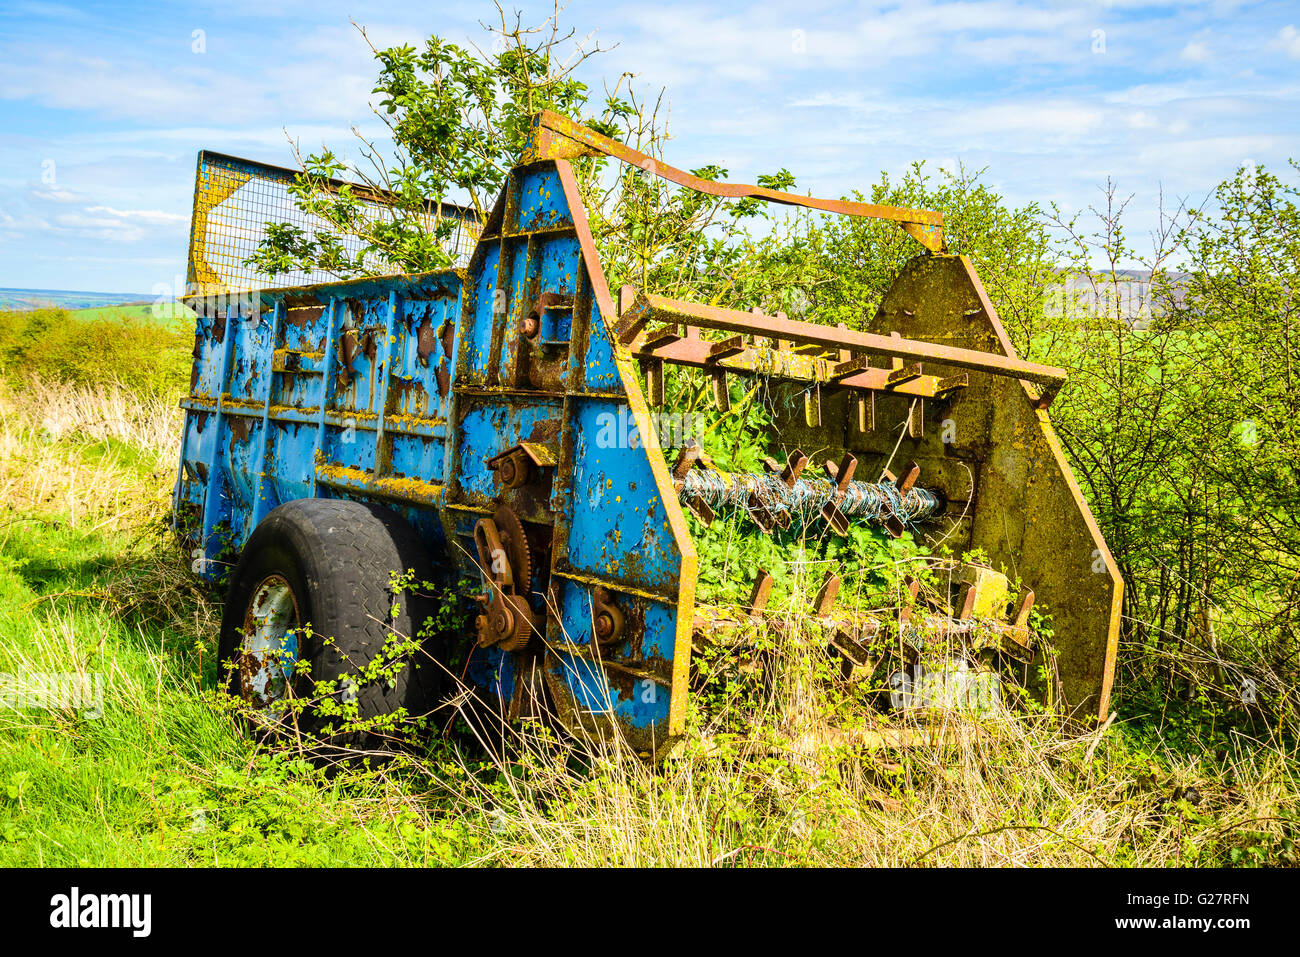 Decaying agricultural machinery below Thorpe Bassett Wold in the Yorkshire Wolds - Stock Image